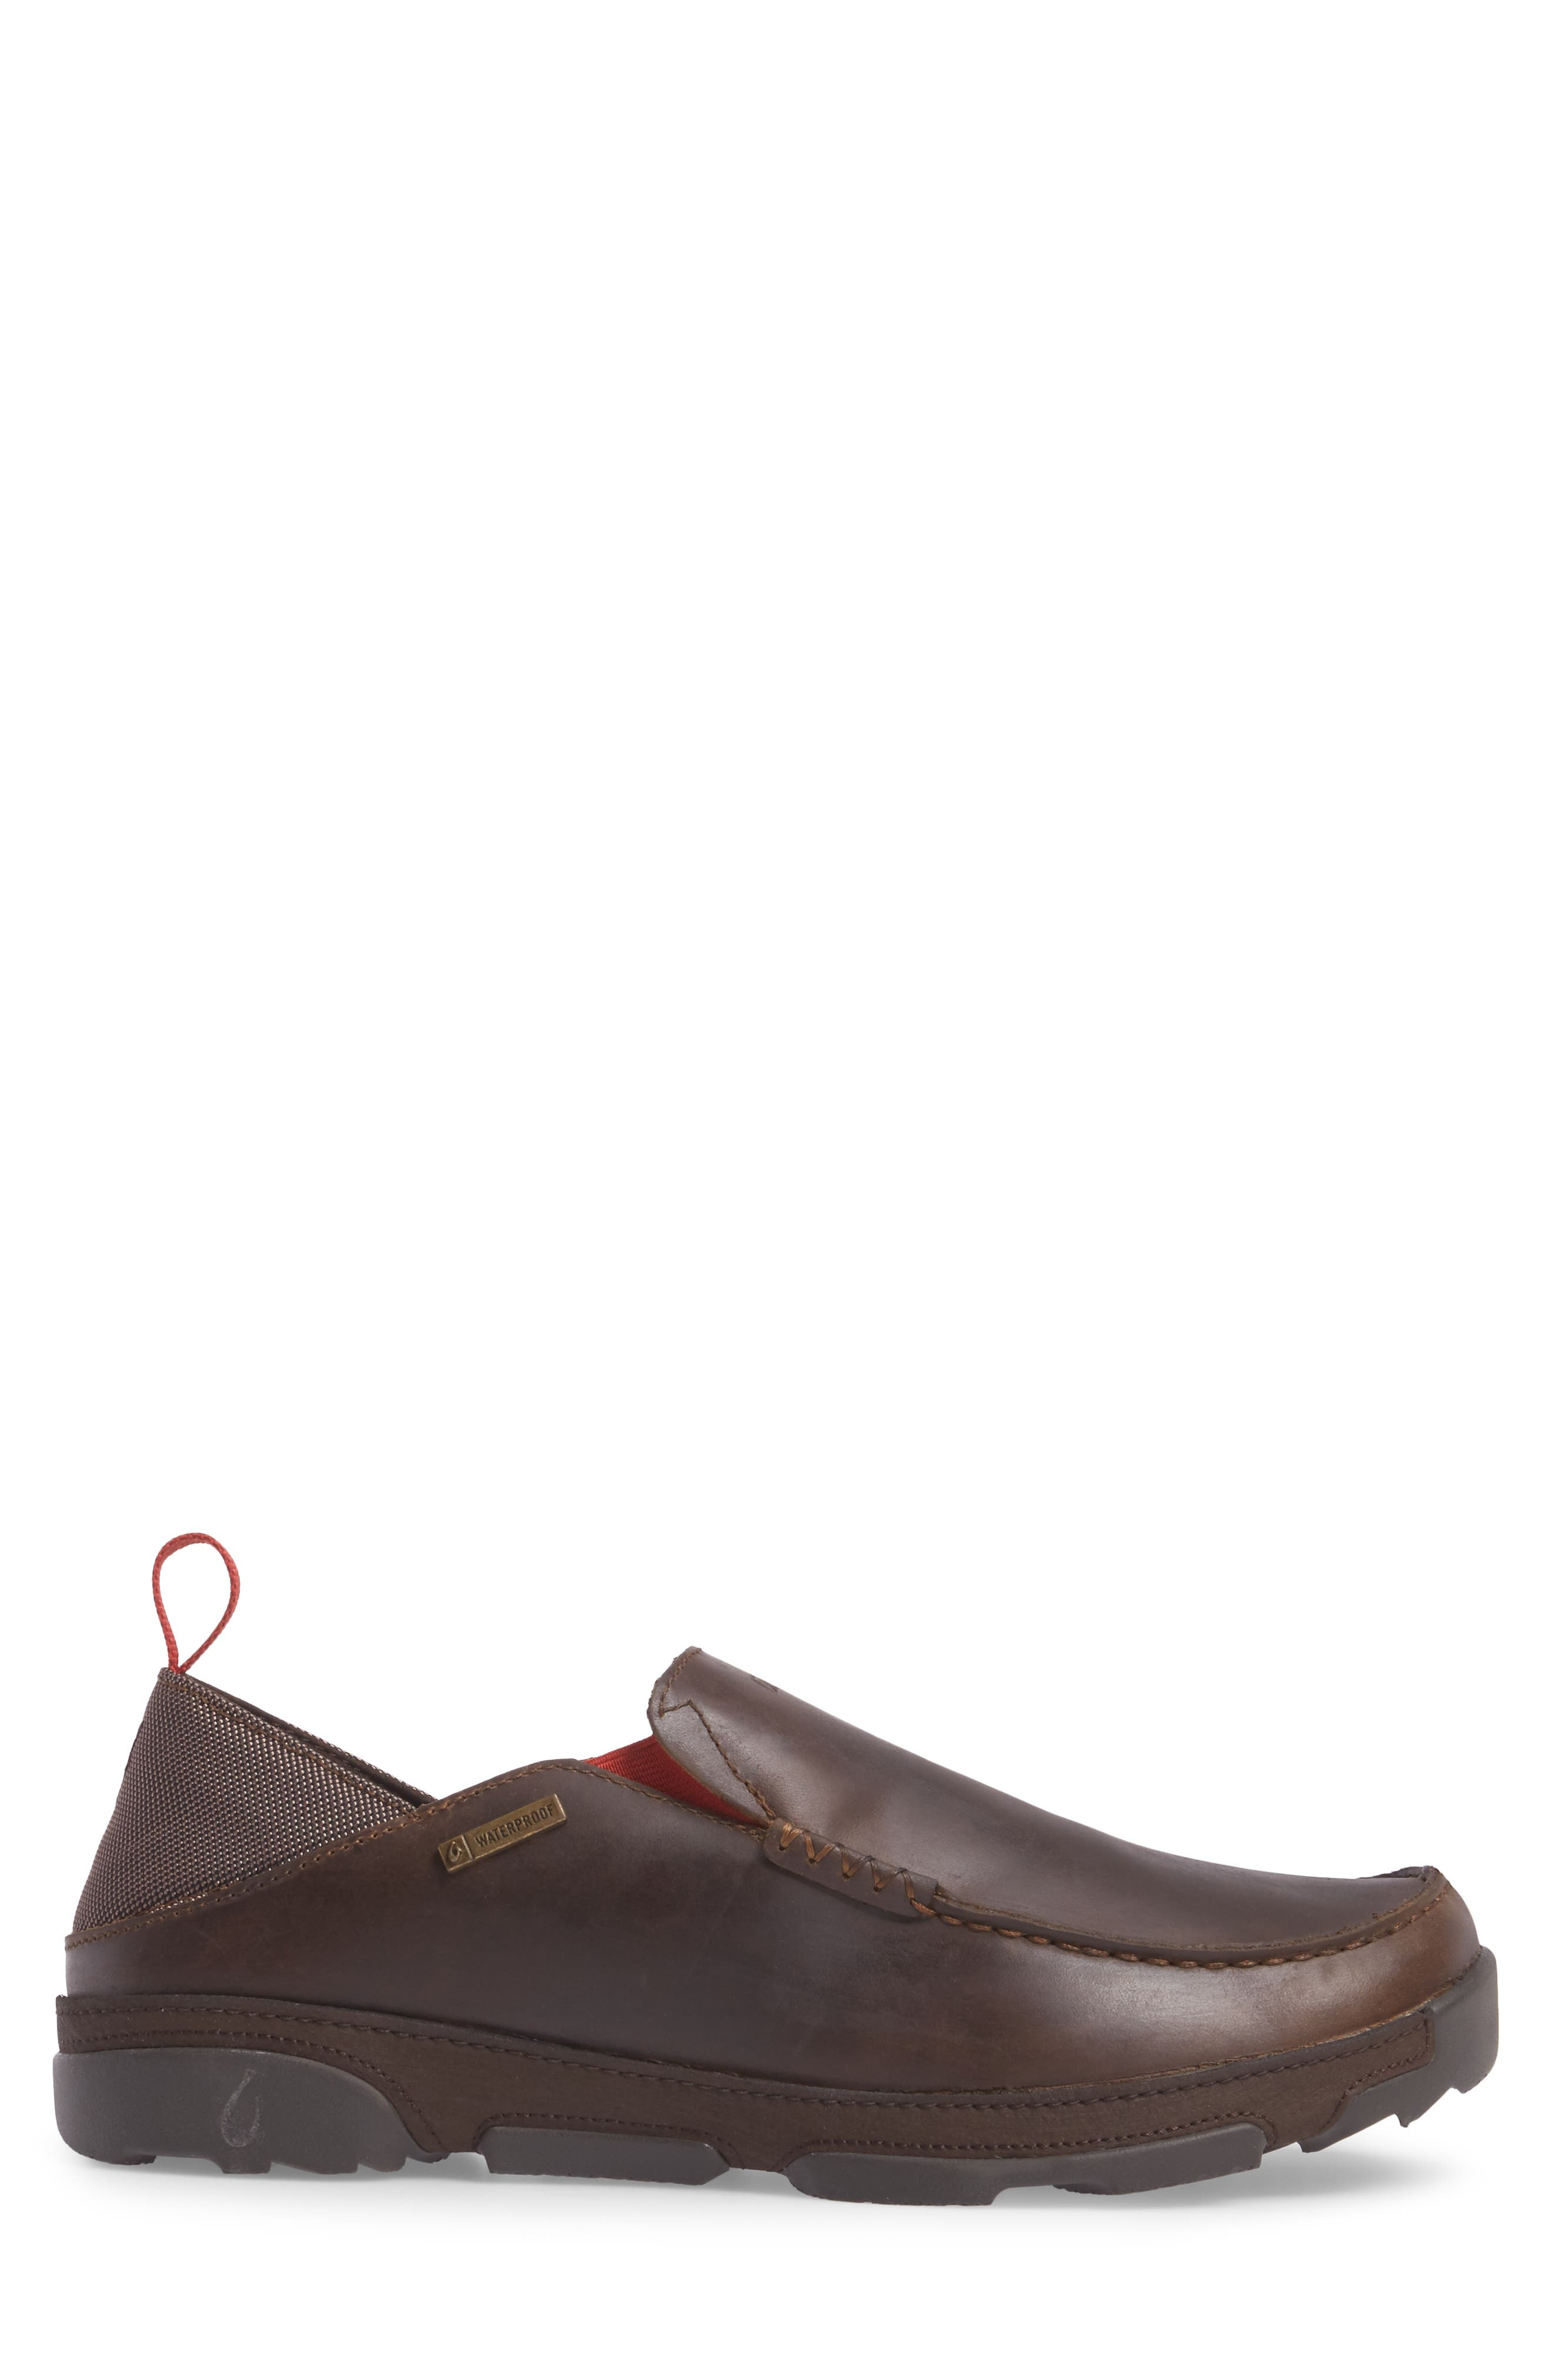 Na'I Collapsible Waterproof Slip-On,                             Alternate thumbnail 3, color,                             CAROB/ DARK WOOD LEATHER